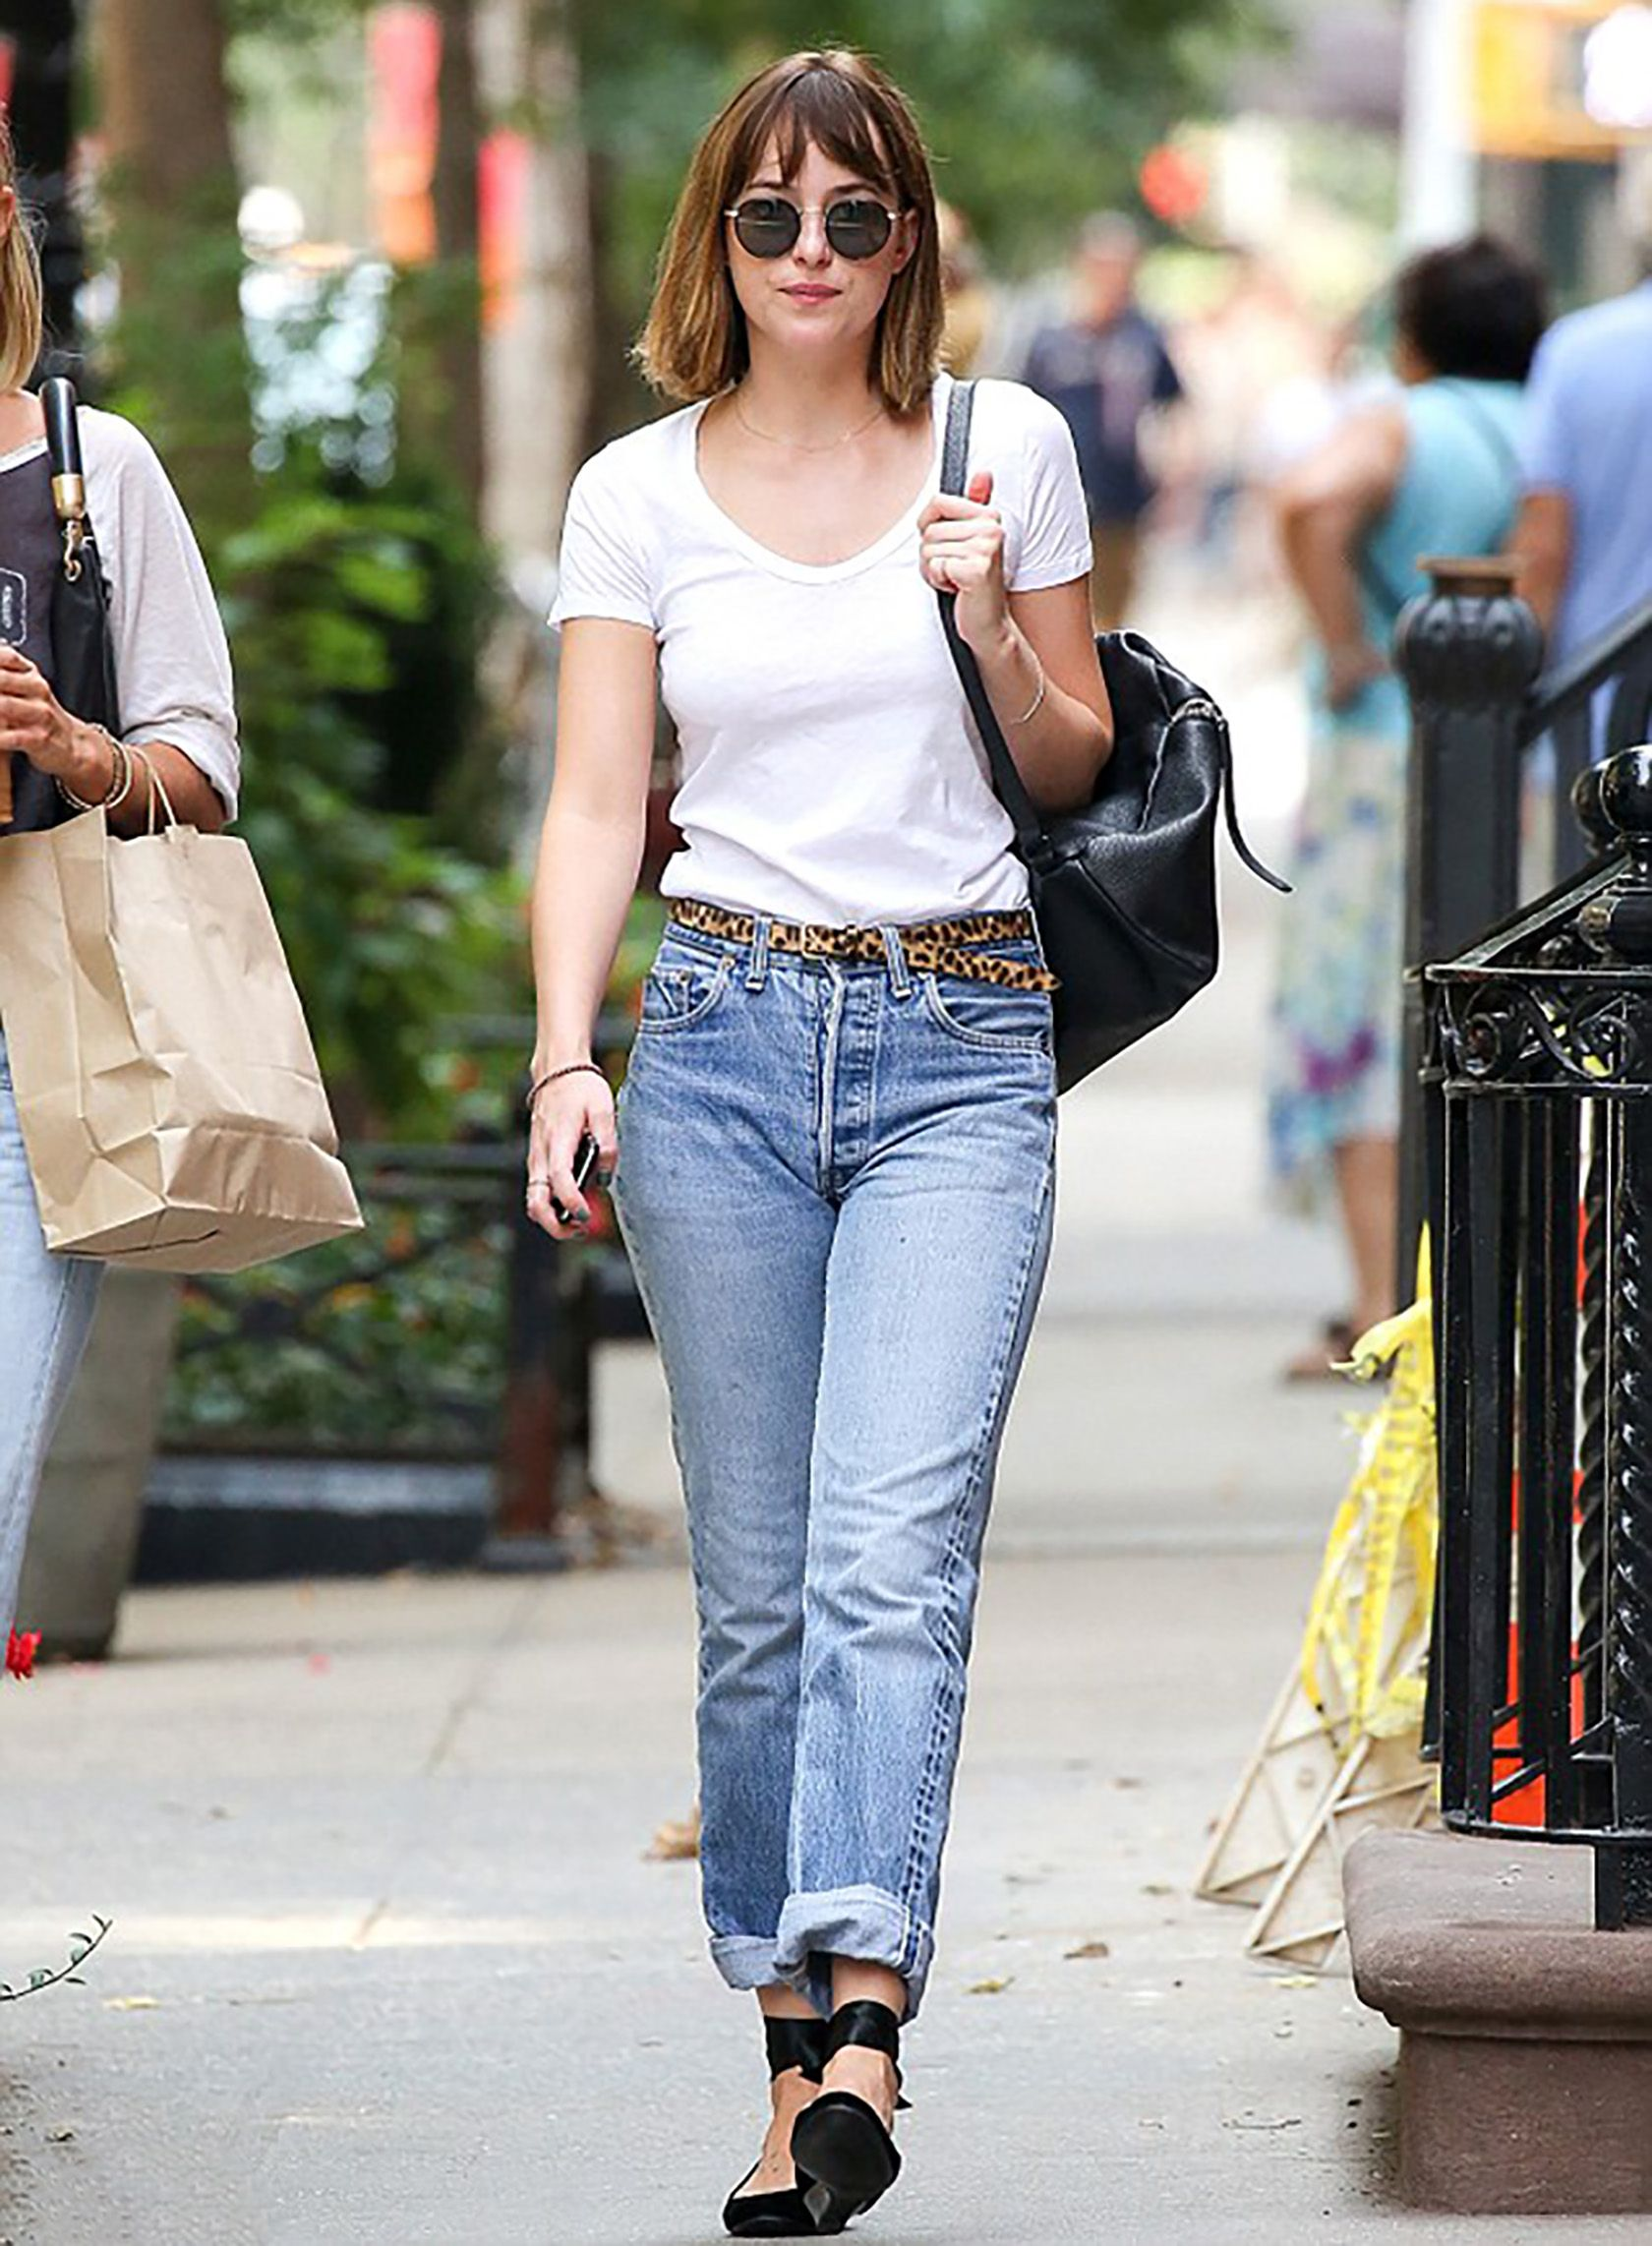 643139494 Sydne Style shows how to wear the mom jeans trend like dakota johnson